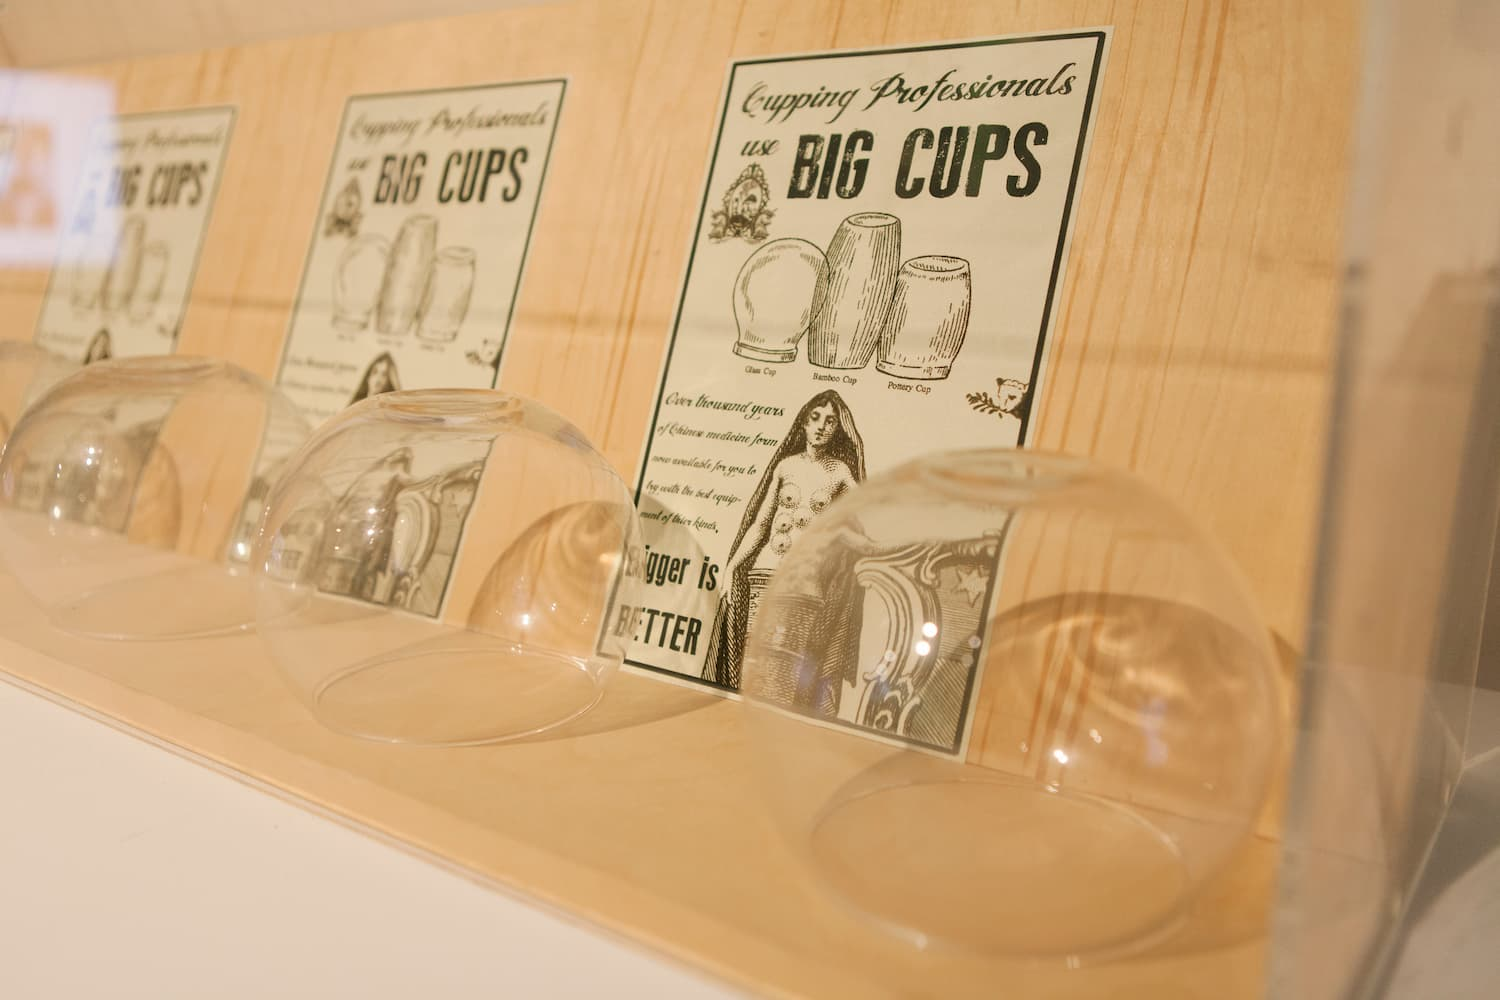 Cupping professionals use BIG CUPS.